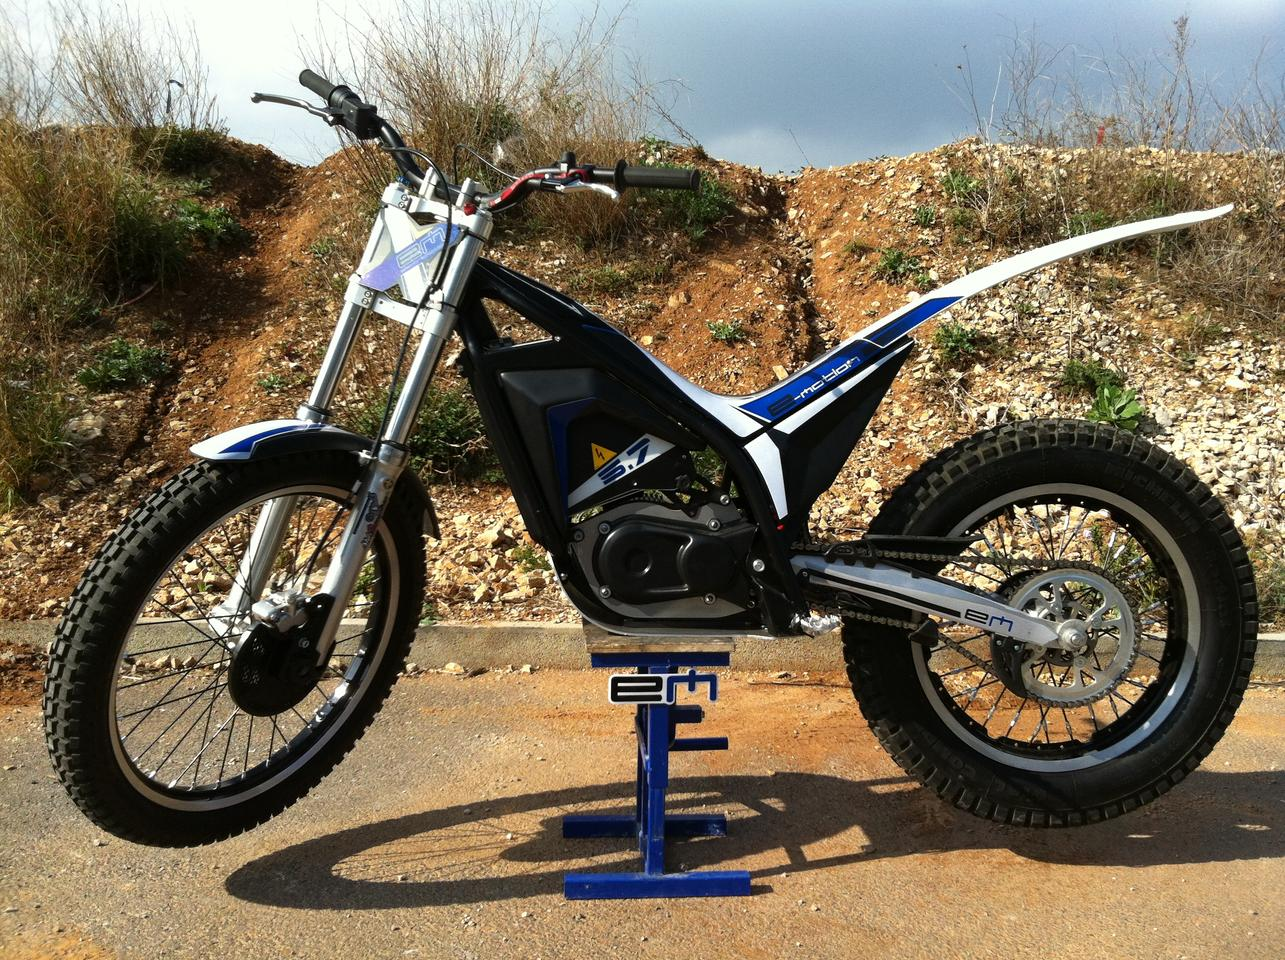 The Electric Motion 5.7 trials bike in competition mode